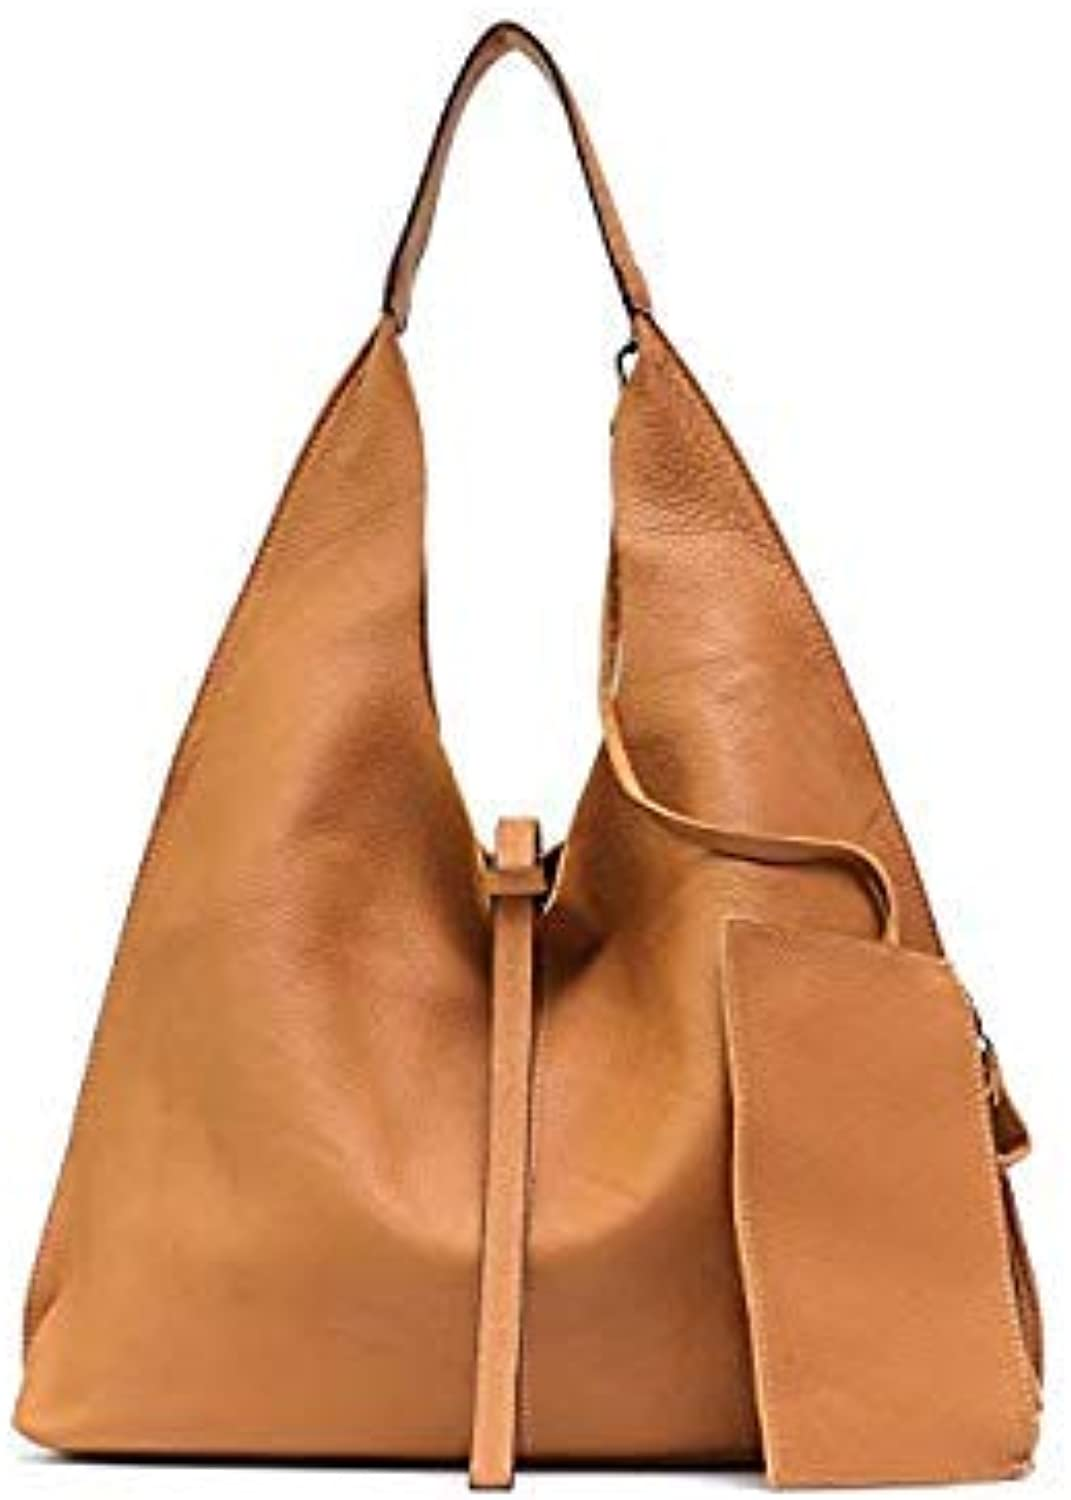 Bloomerang MONFE Genuine Leather Hobo Bags Women Casual Large Tote String Cowhide Shoulder Bags High Quality Brand Handbag Coin Purse Liner color TAN